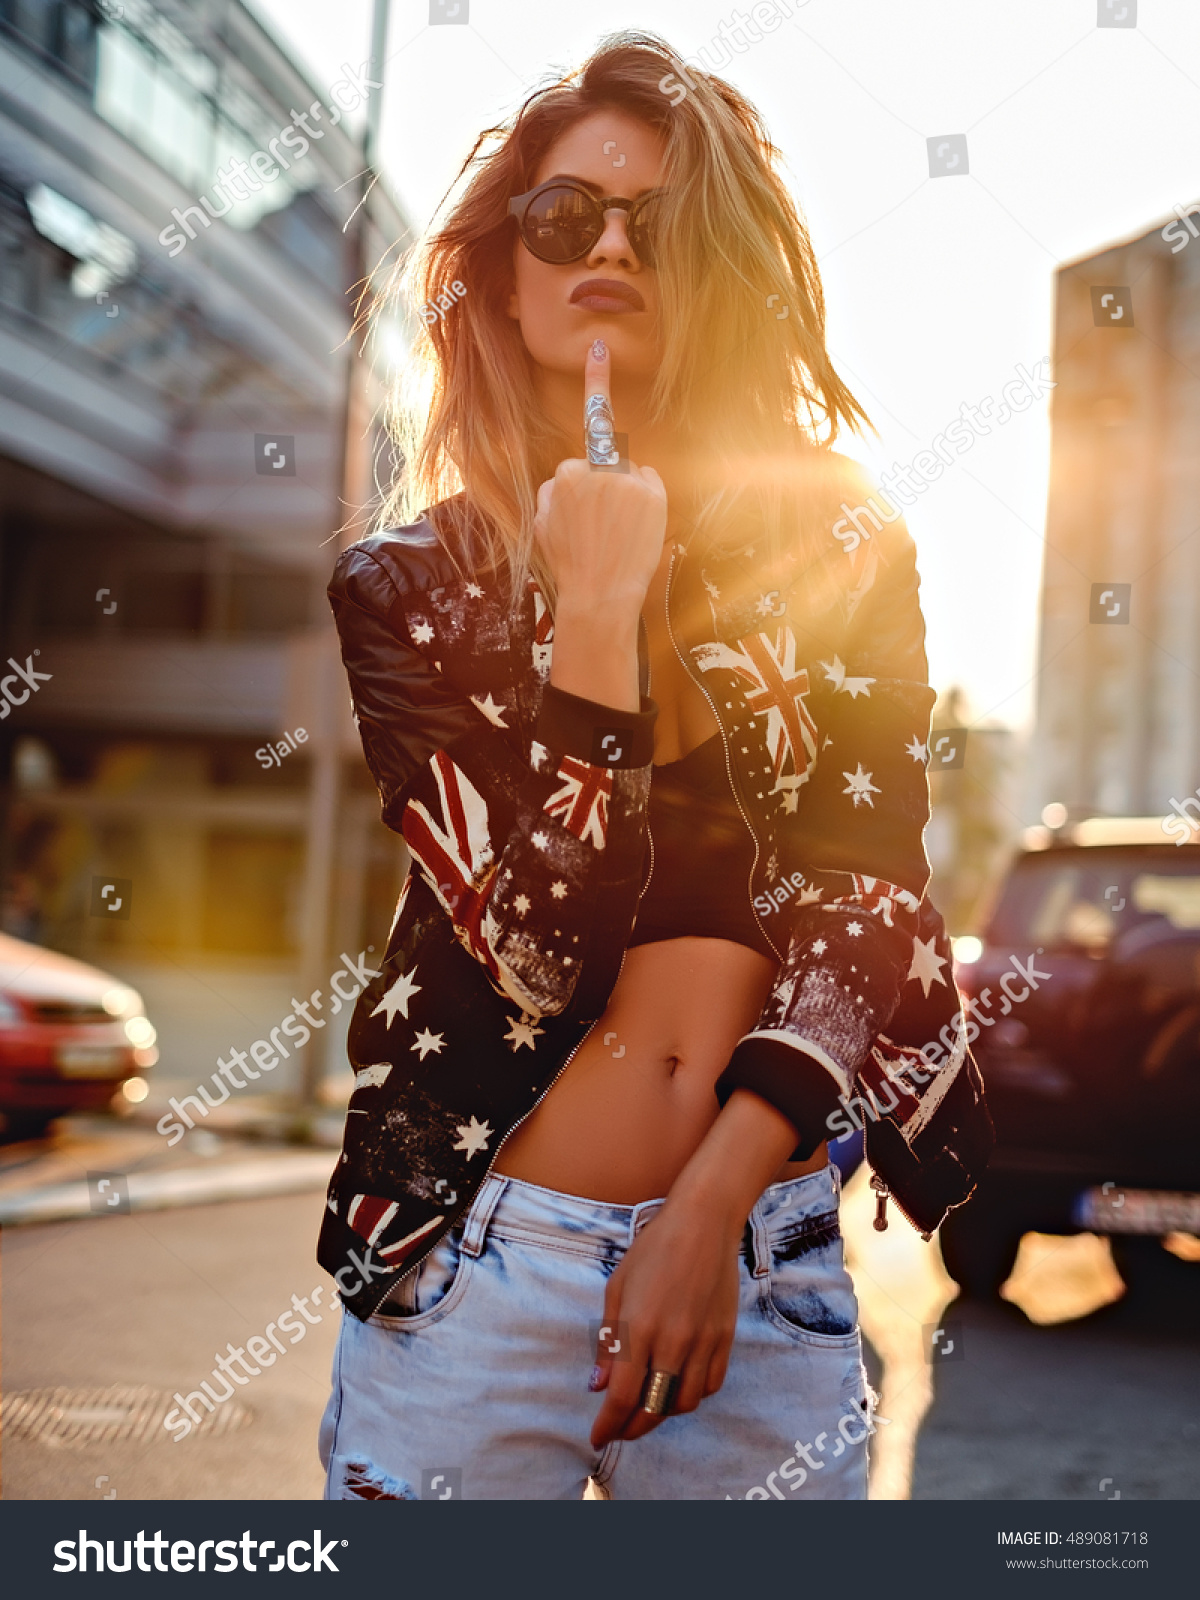 Sexy girl with attitude showing middle finger